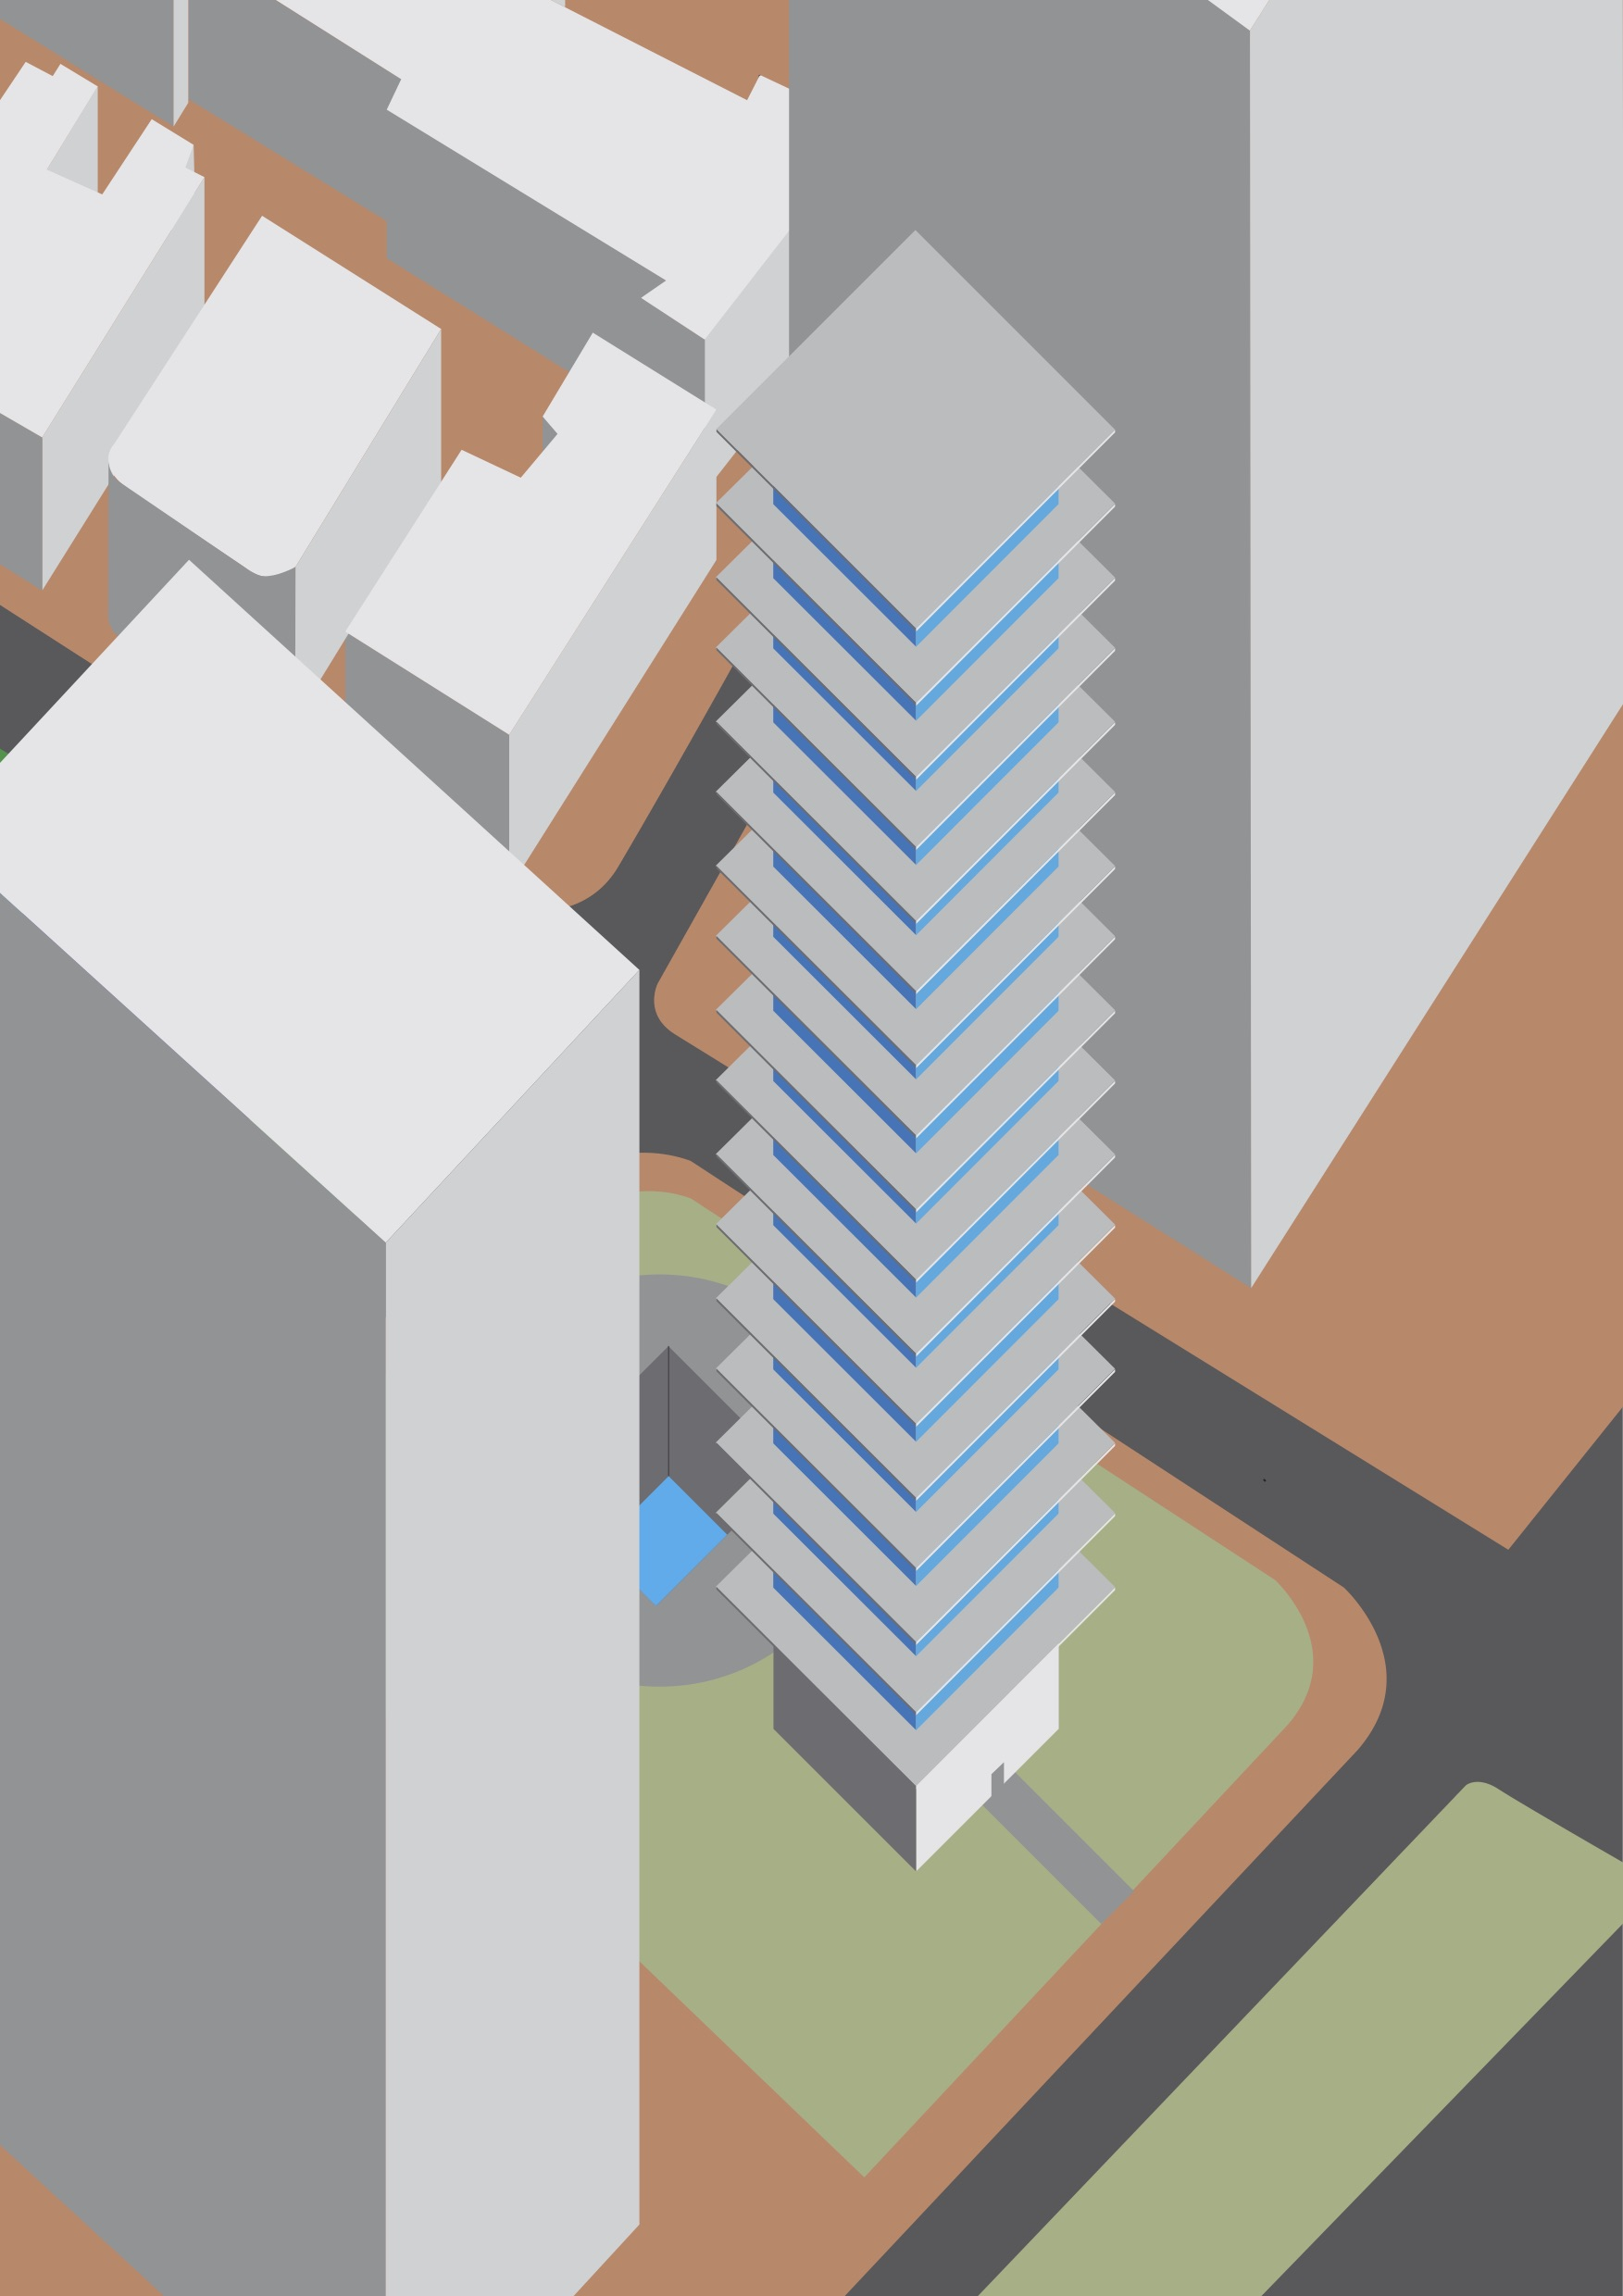 Site axonometric - the image shows the context of the environment surrounding the tower.